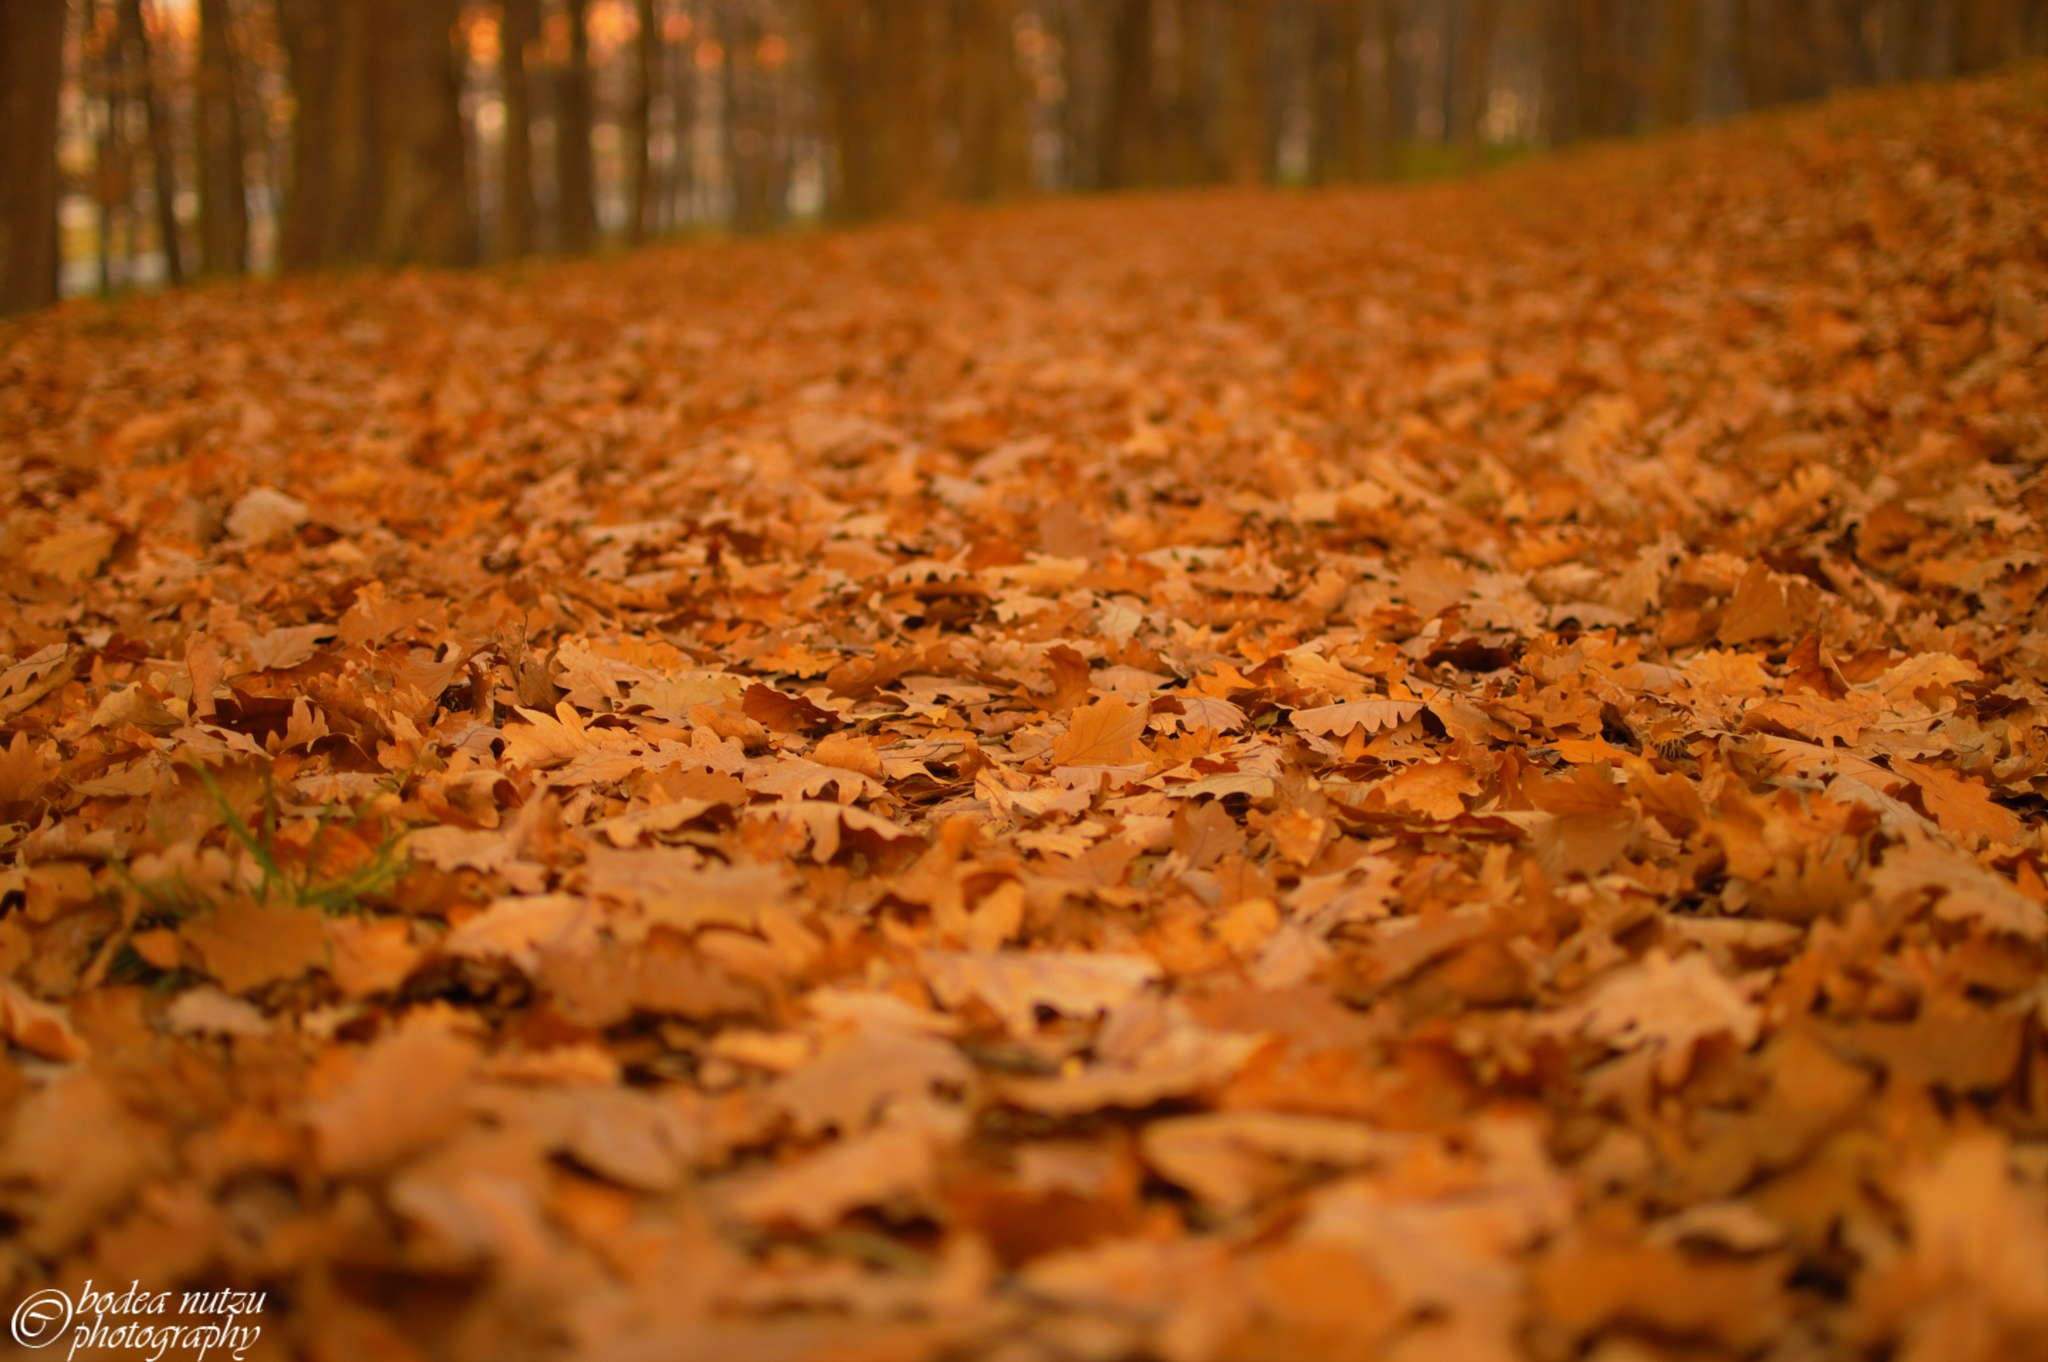 carpet of leaves by Bodea Nutzu